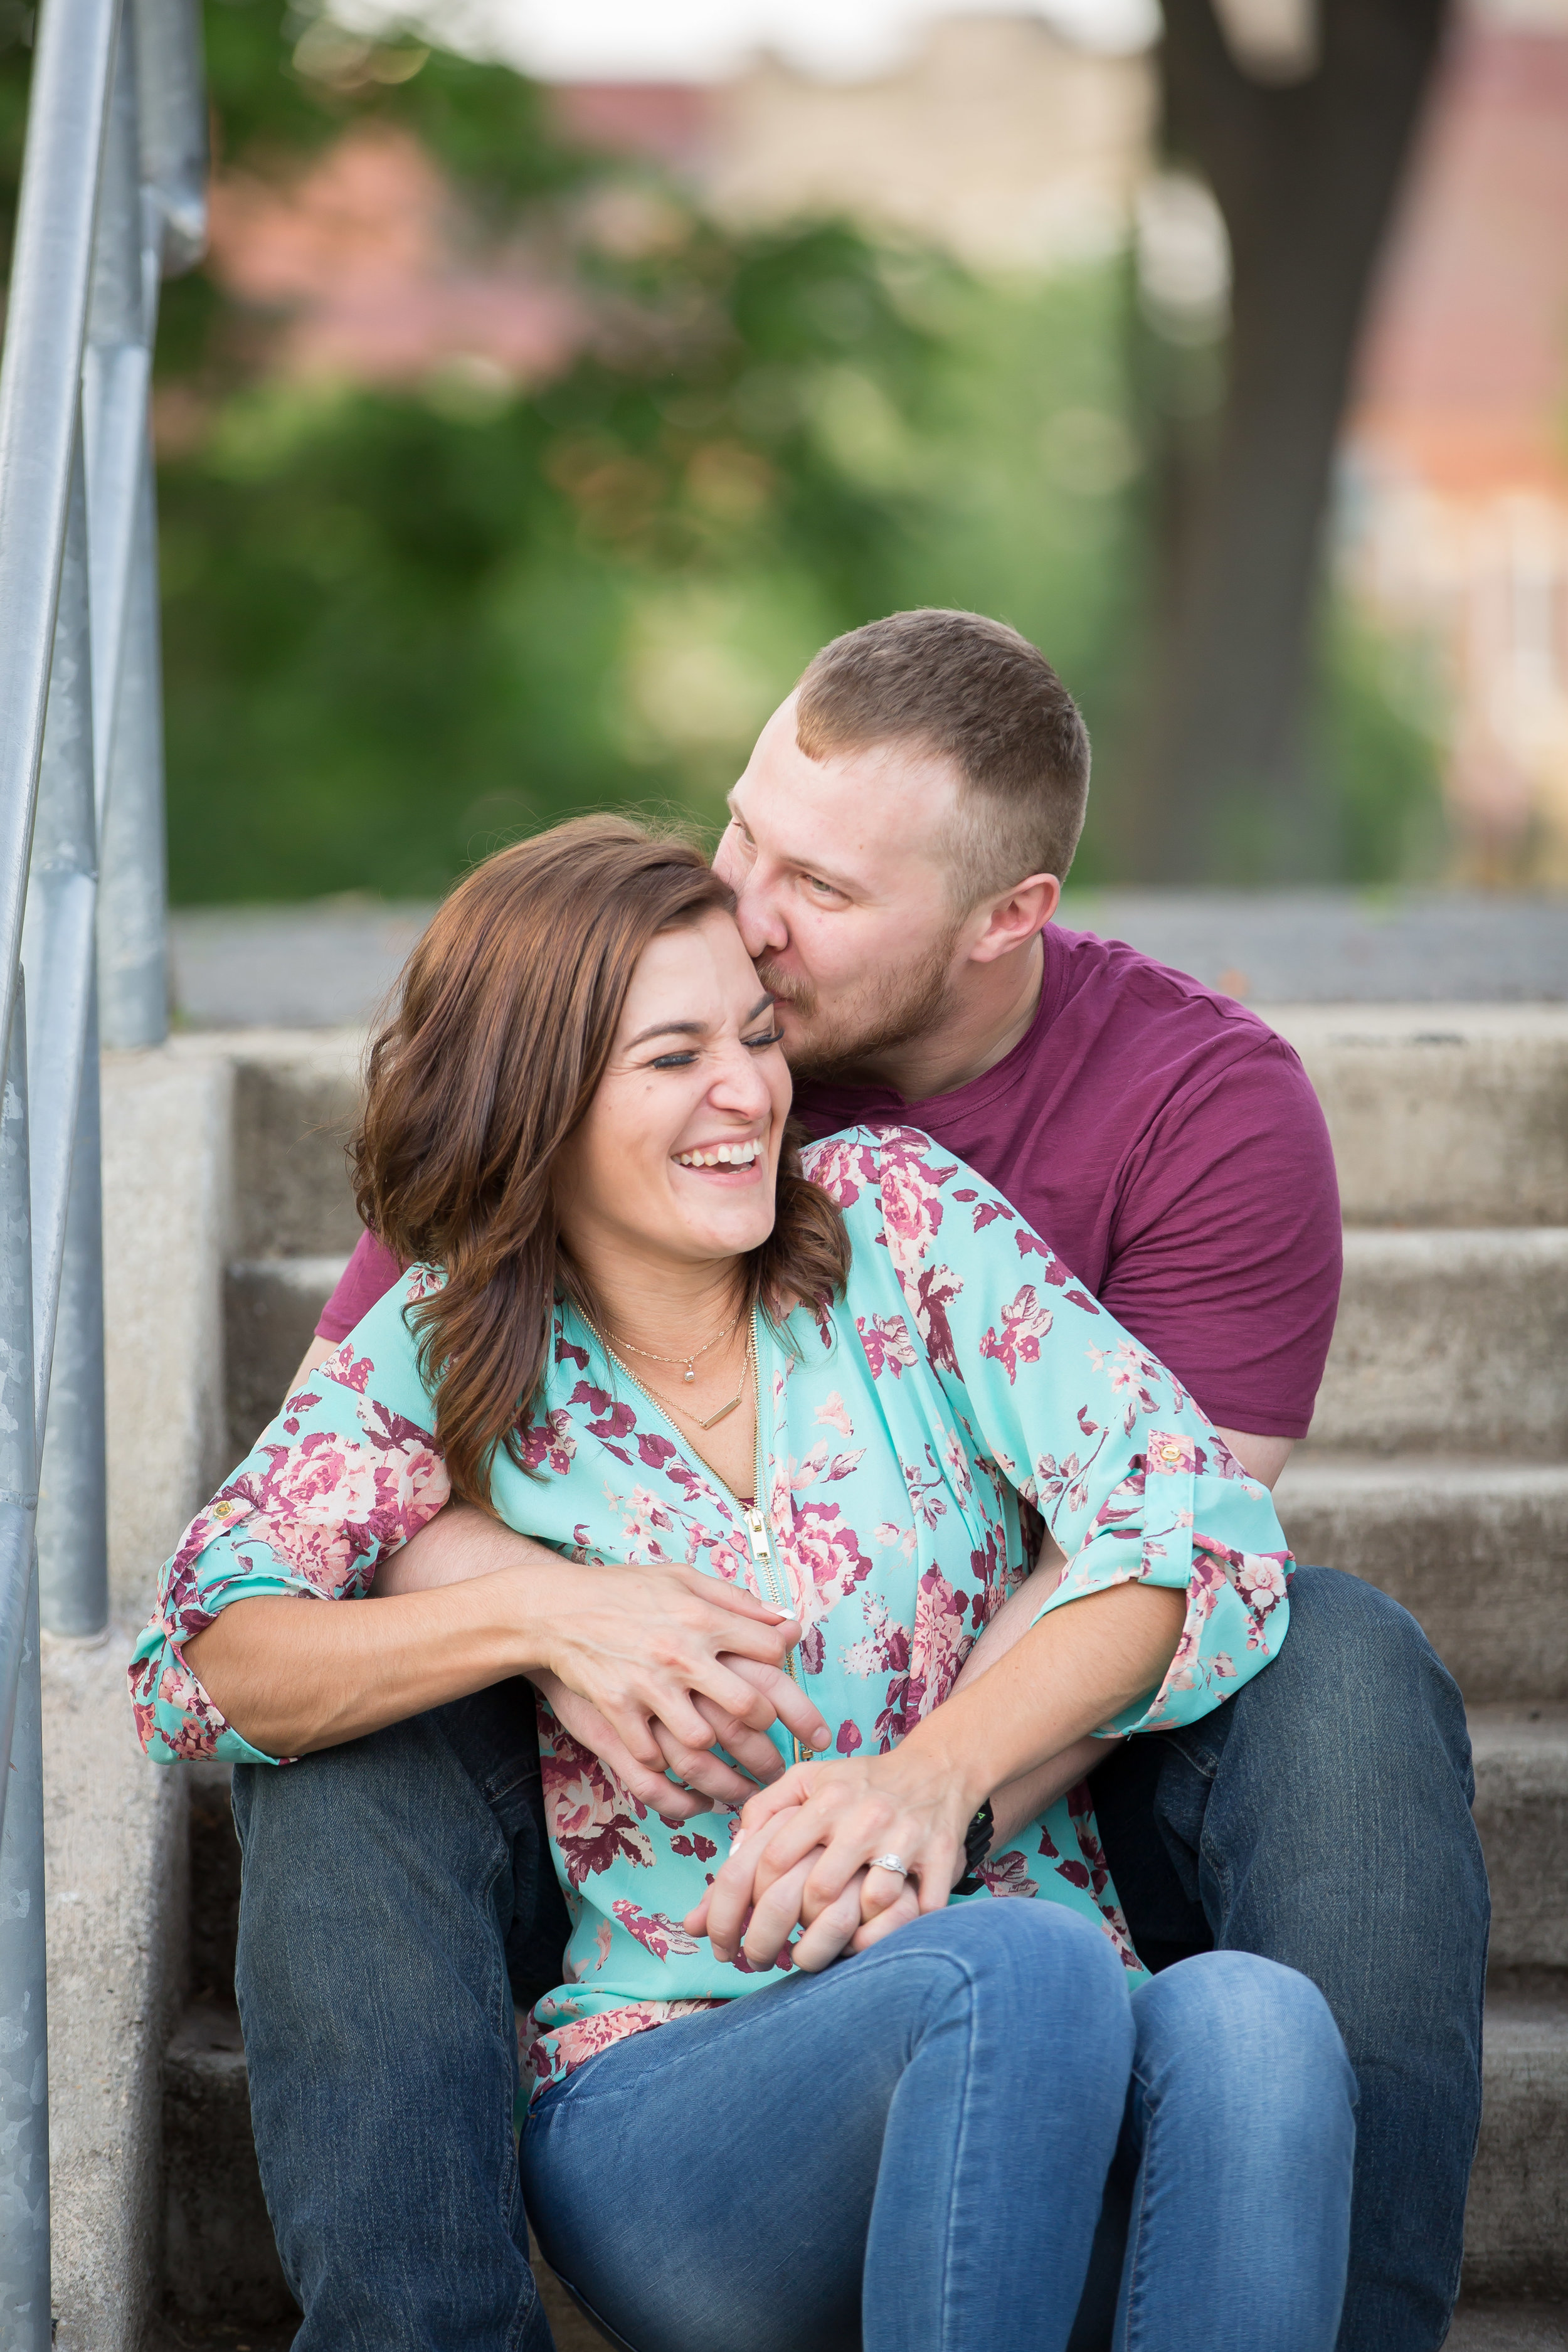 - [ portrait sessions ]Portrait sessions (high school seniors, children, families, maternity, and engagements) are $150 and include the following: indoor and outdoor shots, various backdrops, multiple outfits, and multiple locations if time allows. There is no additional fee if you choose to have your session within 15 miles of Vienna, WV. Please note this fee does not include prints or products. You will come into the studio for your viewing and ordering session 2-3 weeks after your session takes place. A payment plan option is provided for all clients.